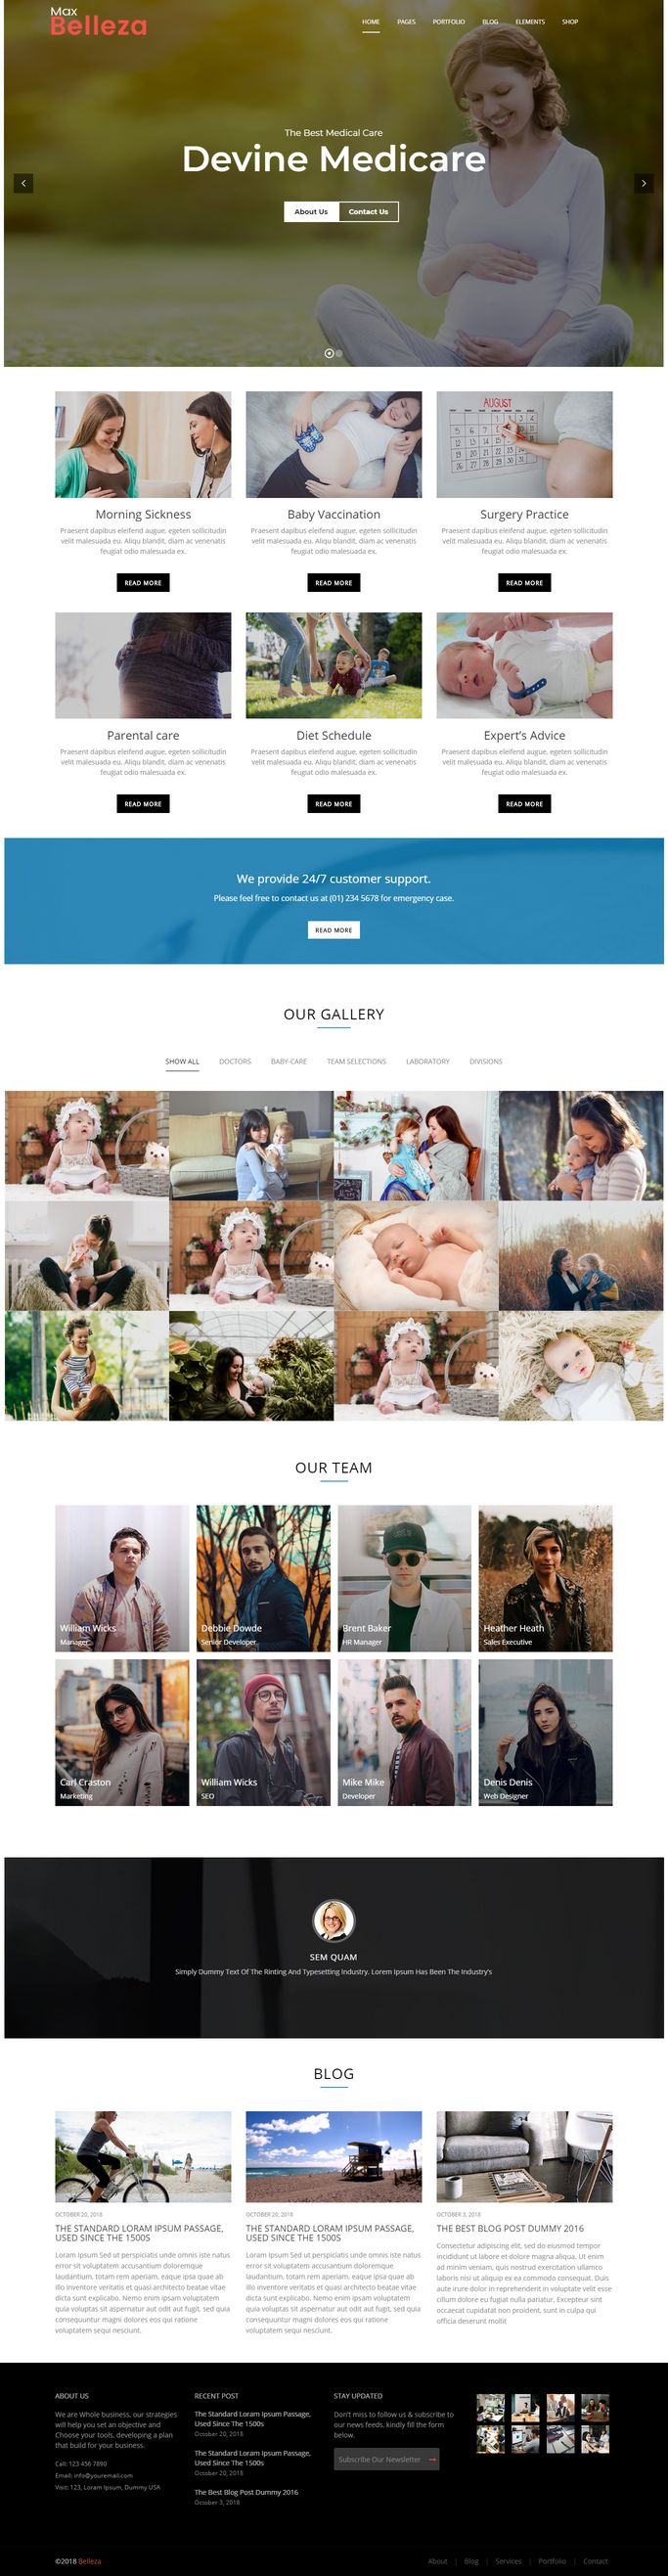 screencapture-wpthemes-multipurposethemes-belleza-pregacare-2018-10-26-15_54_08